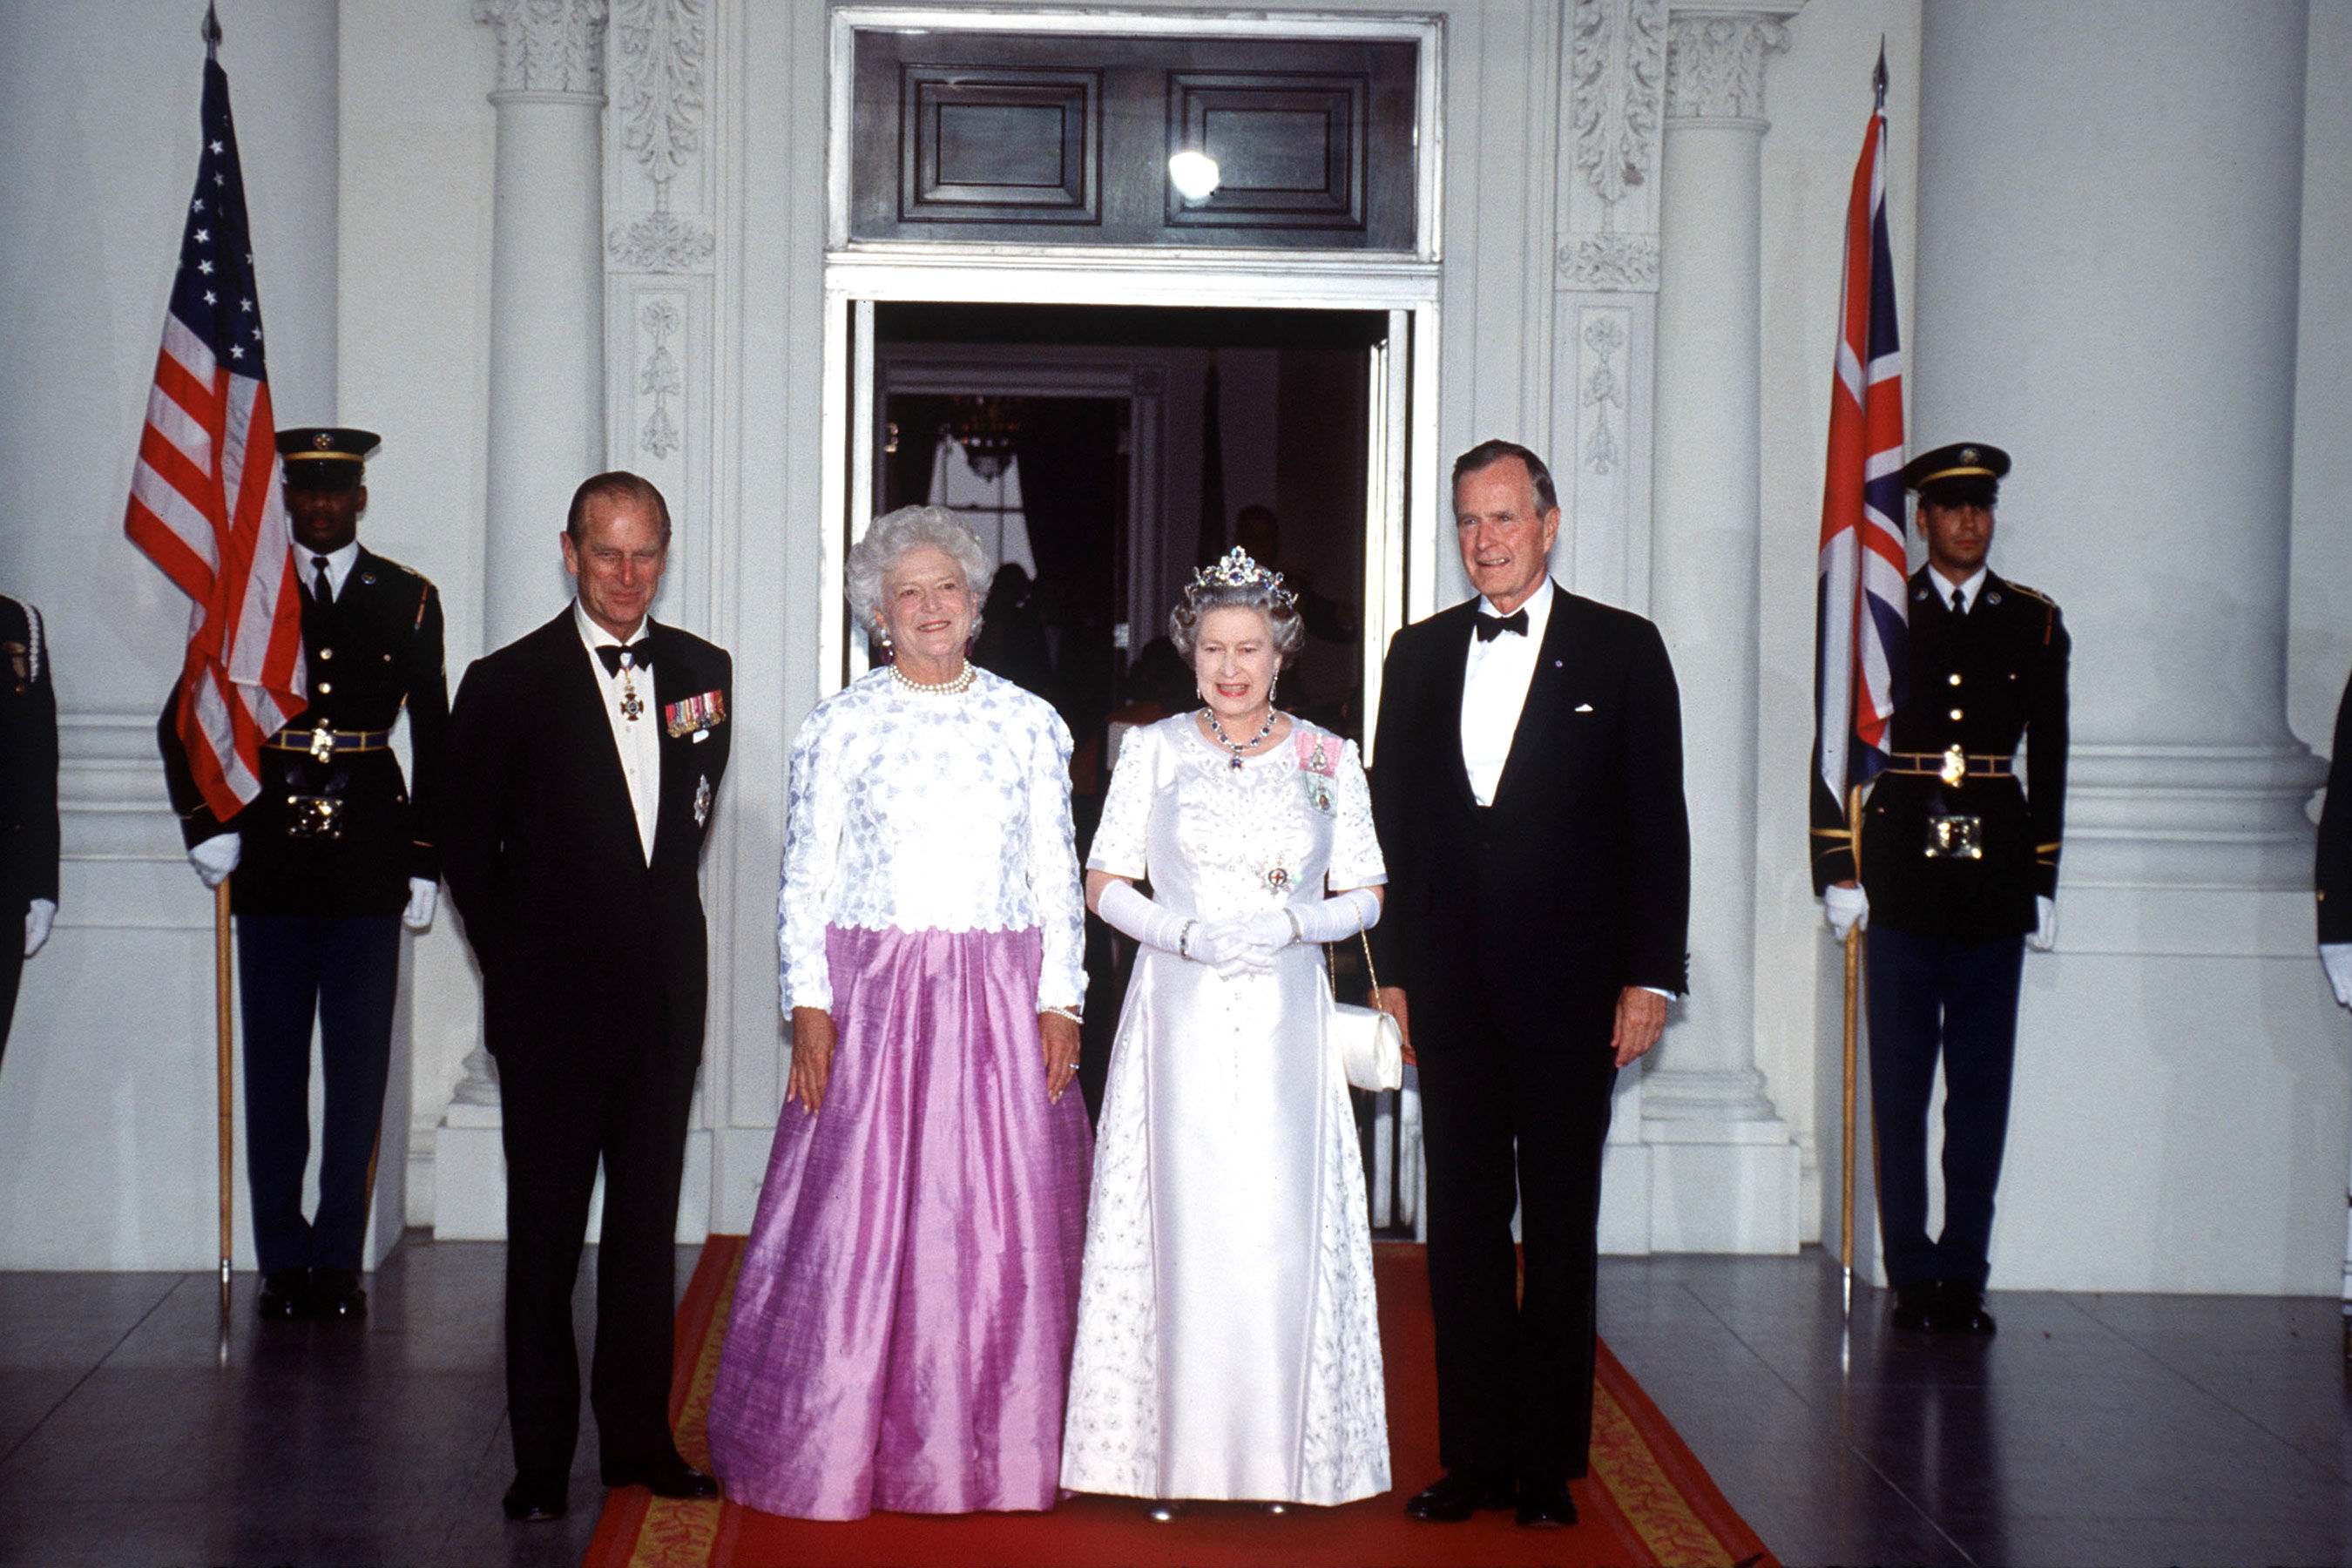 Queen Elizabeth Remembers George H.W. Bush — Who She Knighted in 1993 — with 'Great Fondness'